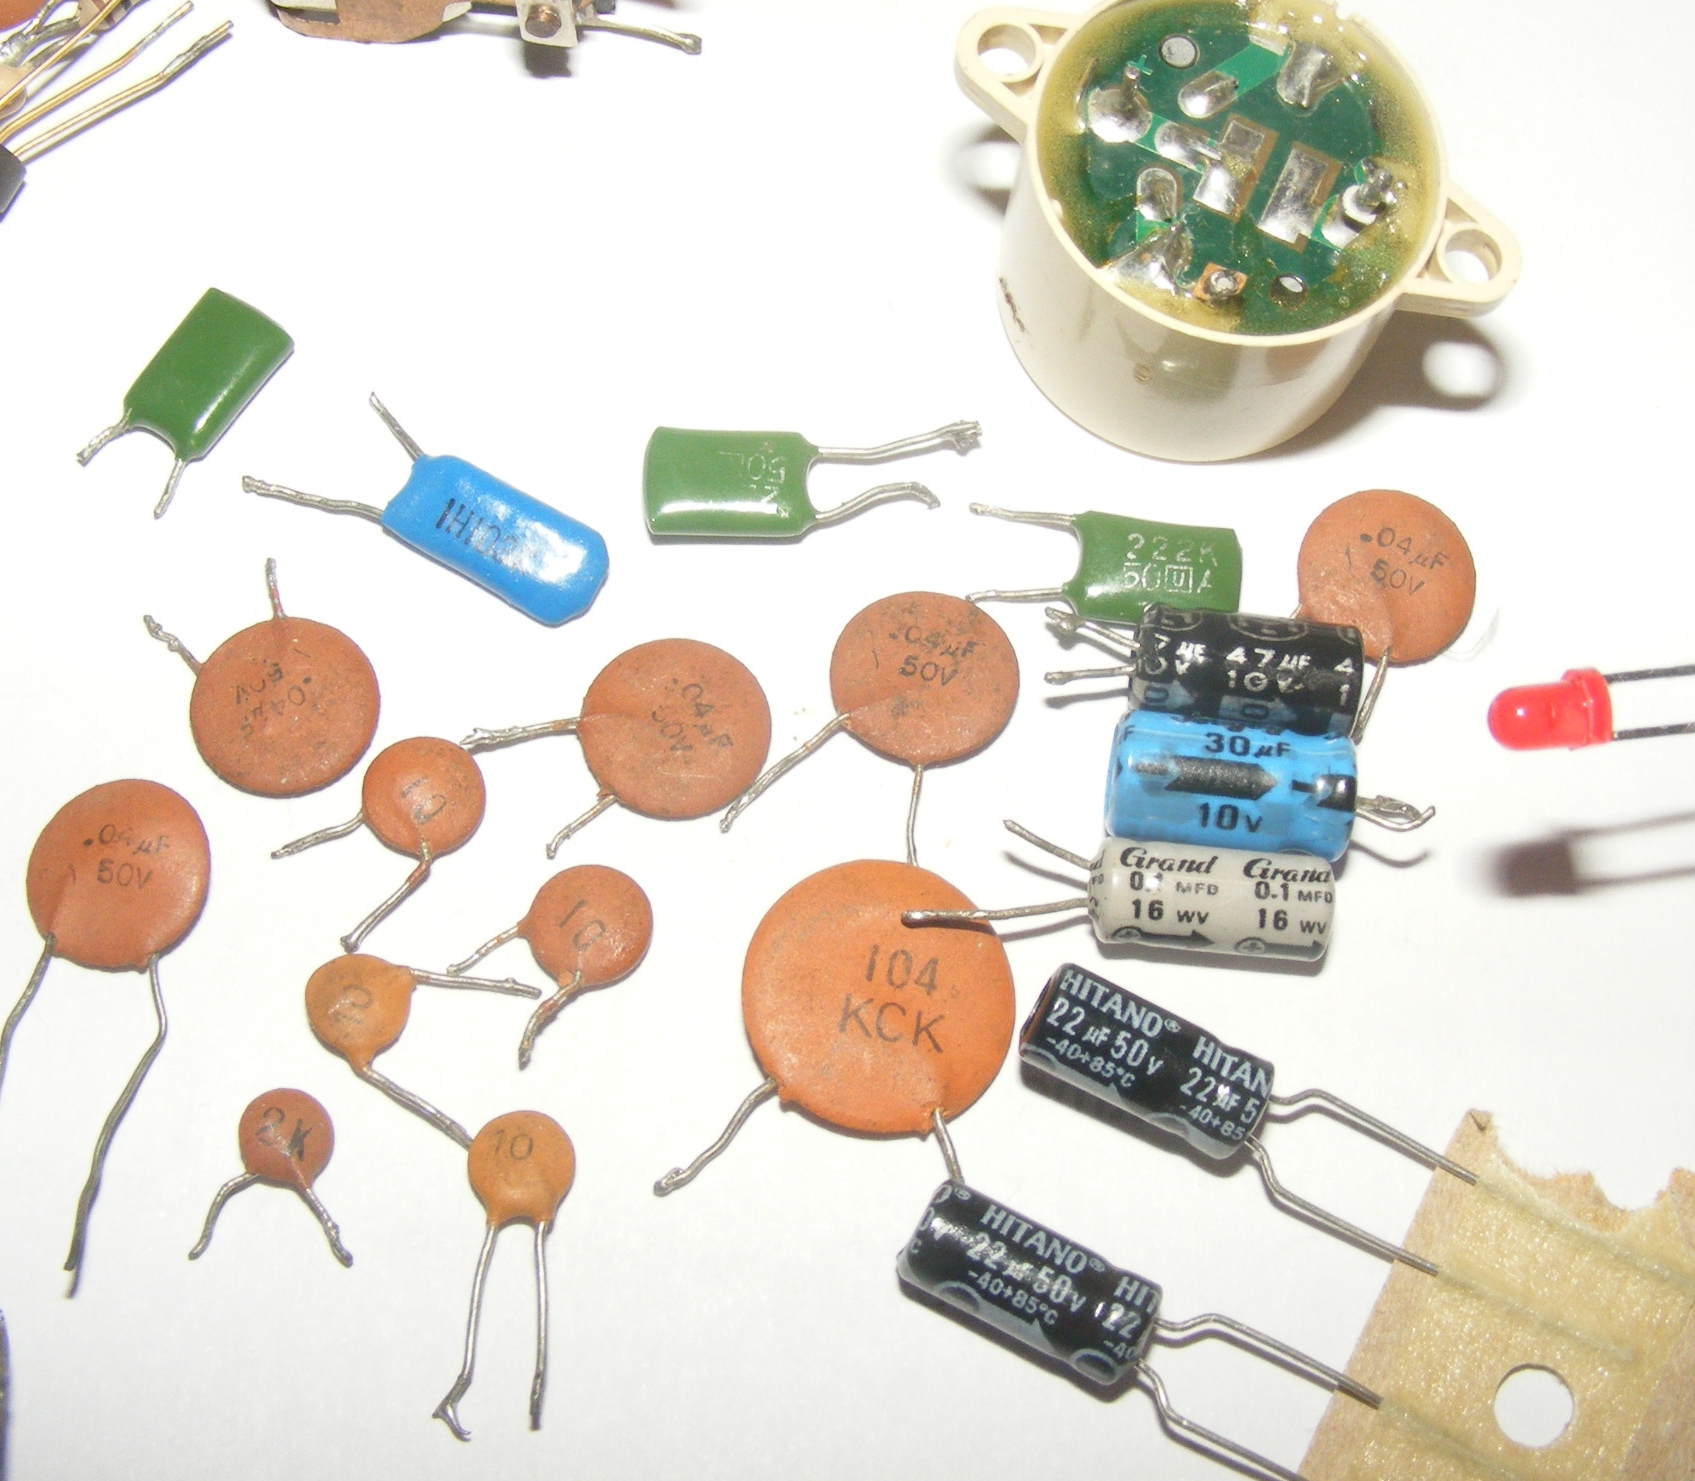 Simple Intermittent Beep Circuit Piezo Electric Buzzer Explained Homemade Projects Electronics Old 1